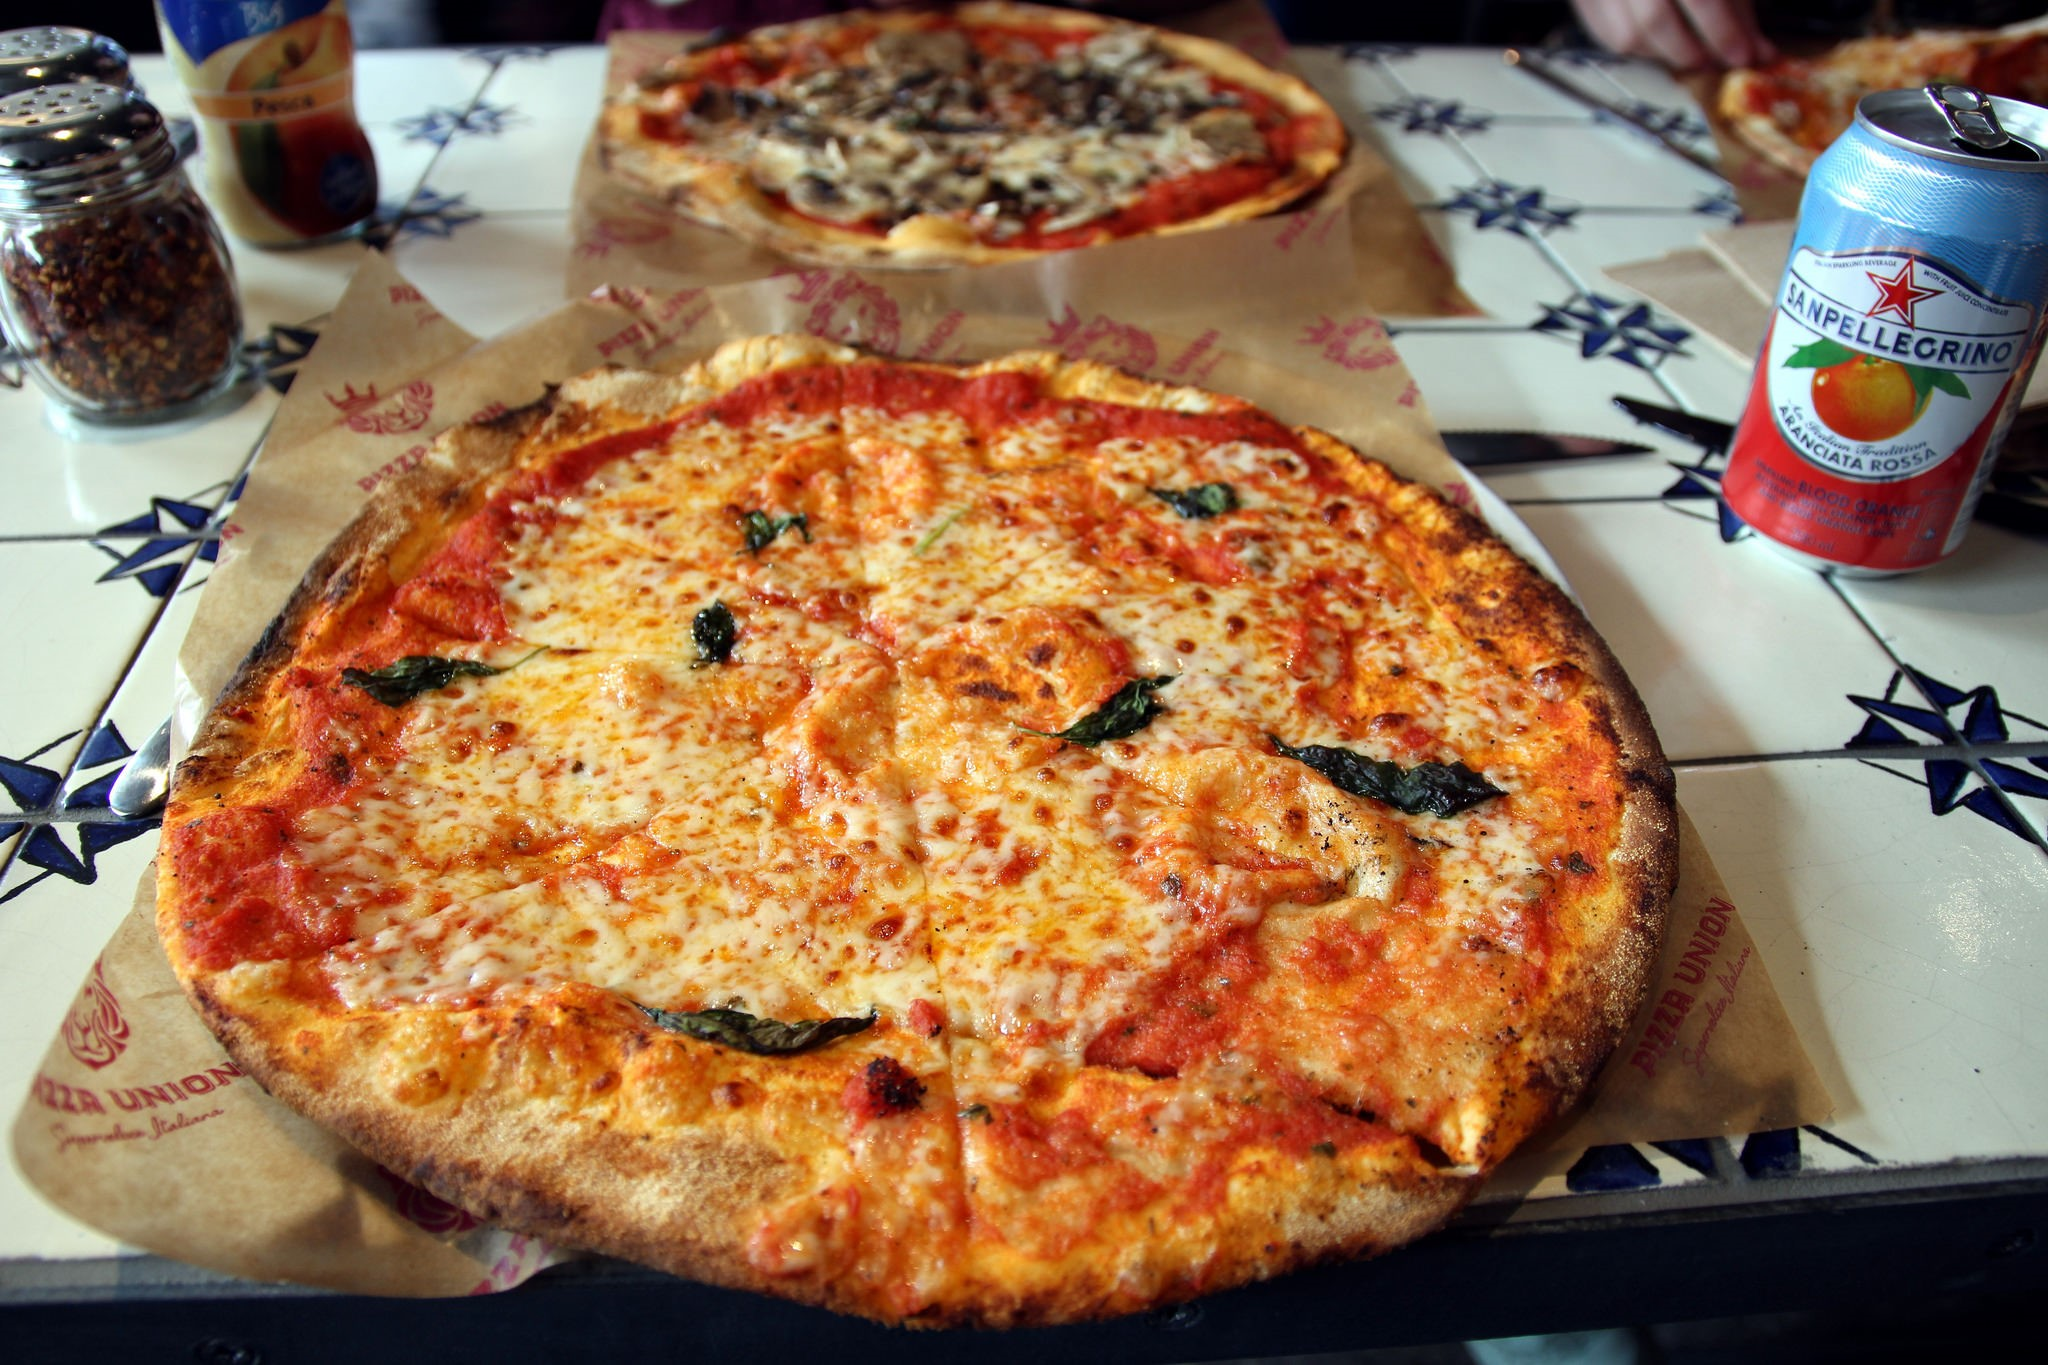 Pizza at Pizza Union, King's Cross London